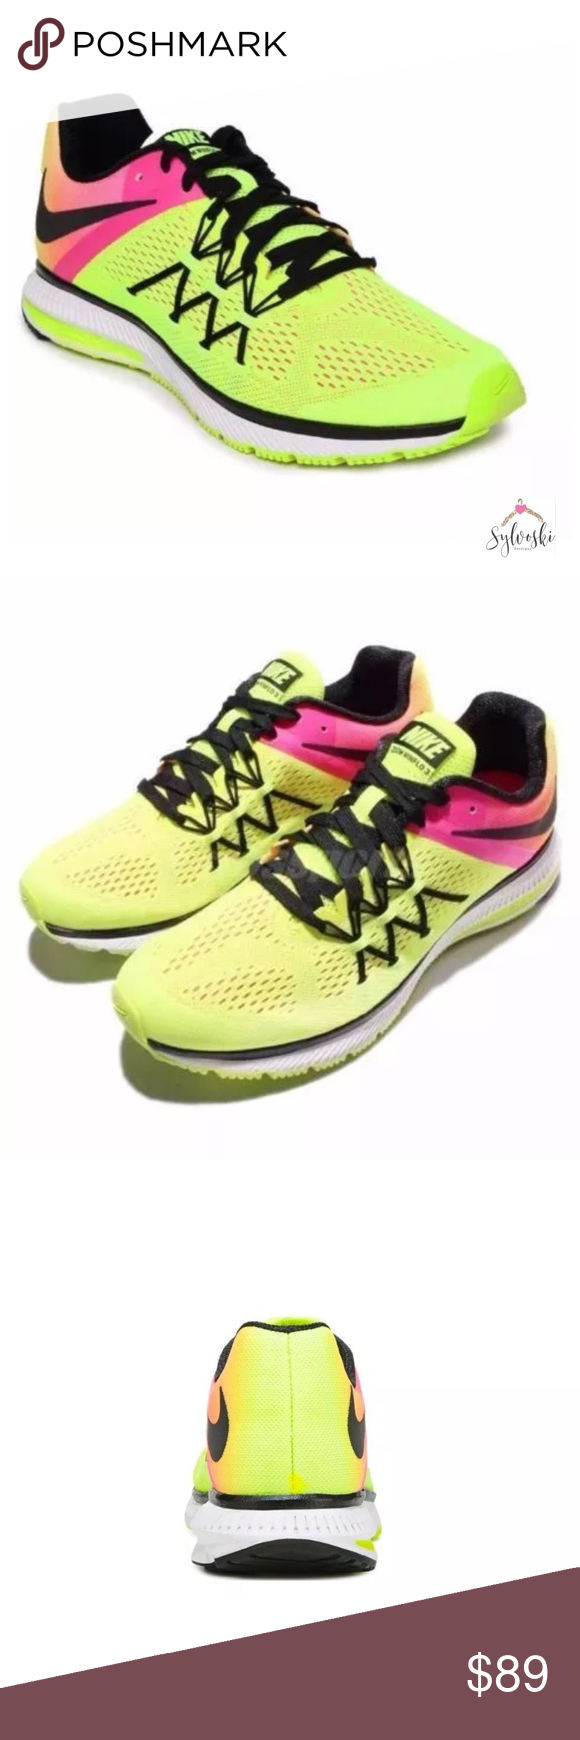 NIKE Men's Zoom Winflo 3 Running Shoe Stay up to date on the road in the  Nike Zoom Winflo 3 Running Shoe from Nike. Features & Details Breathable  engineered ...